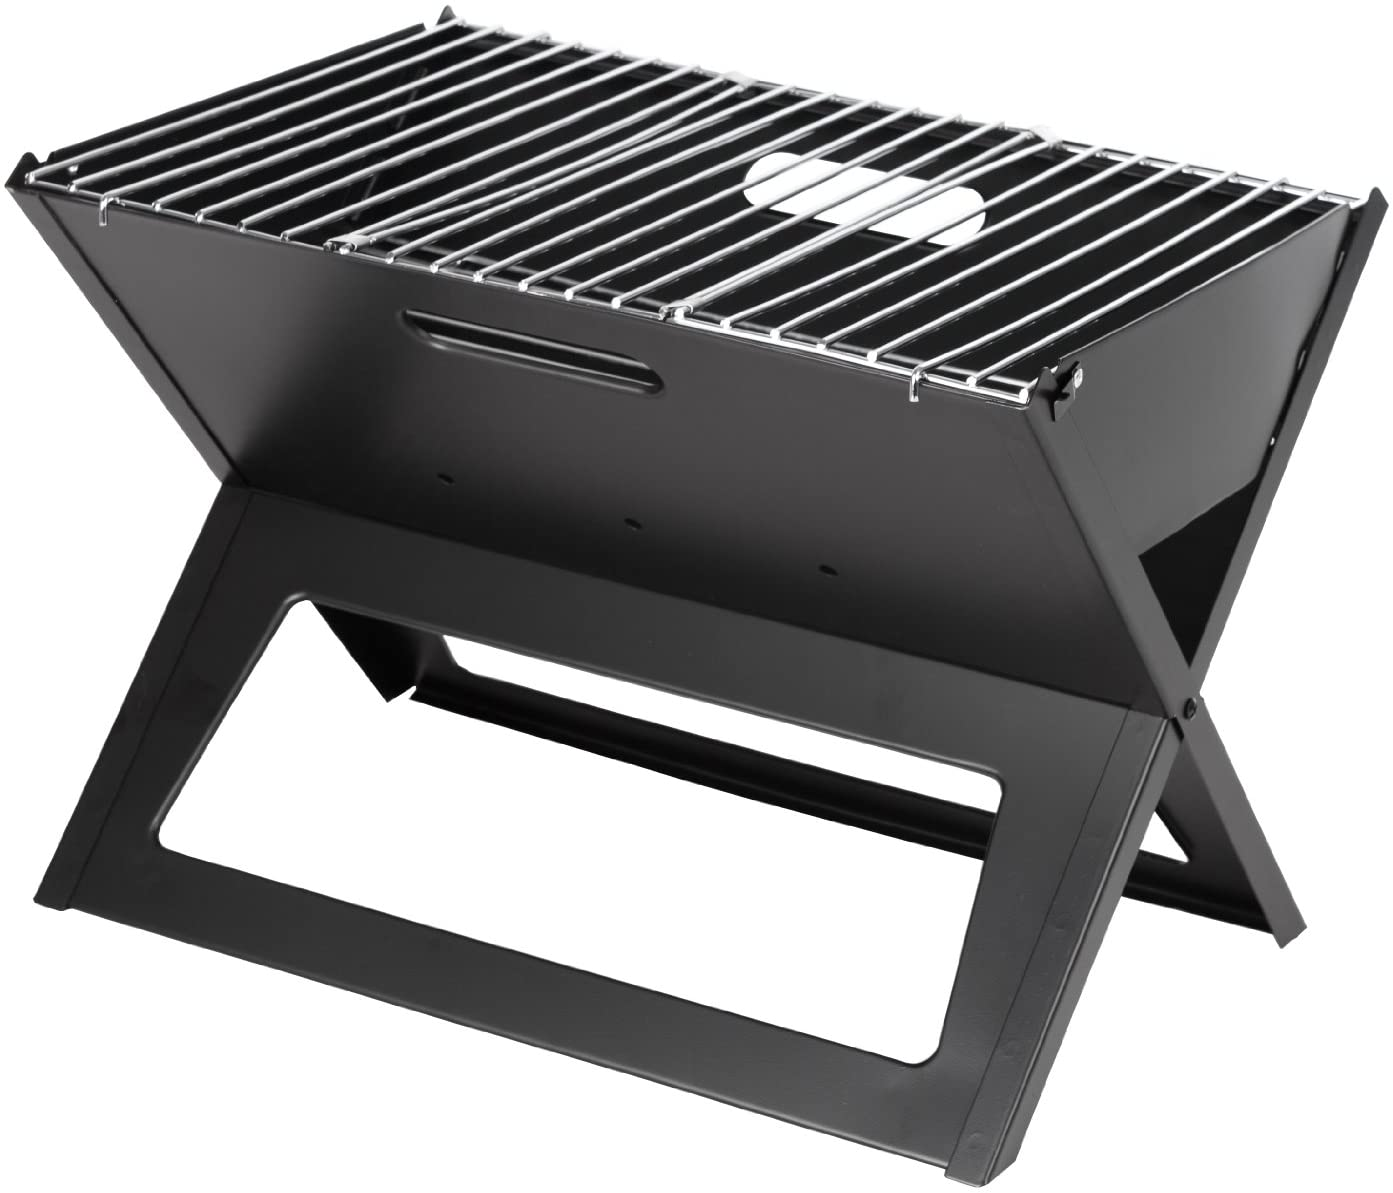 Fire Sense Black Notebook Foldable Charcoal Grill, best portable grills